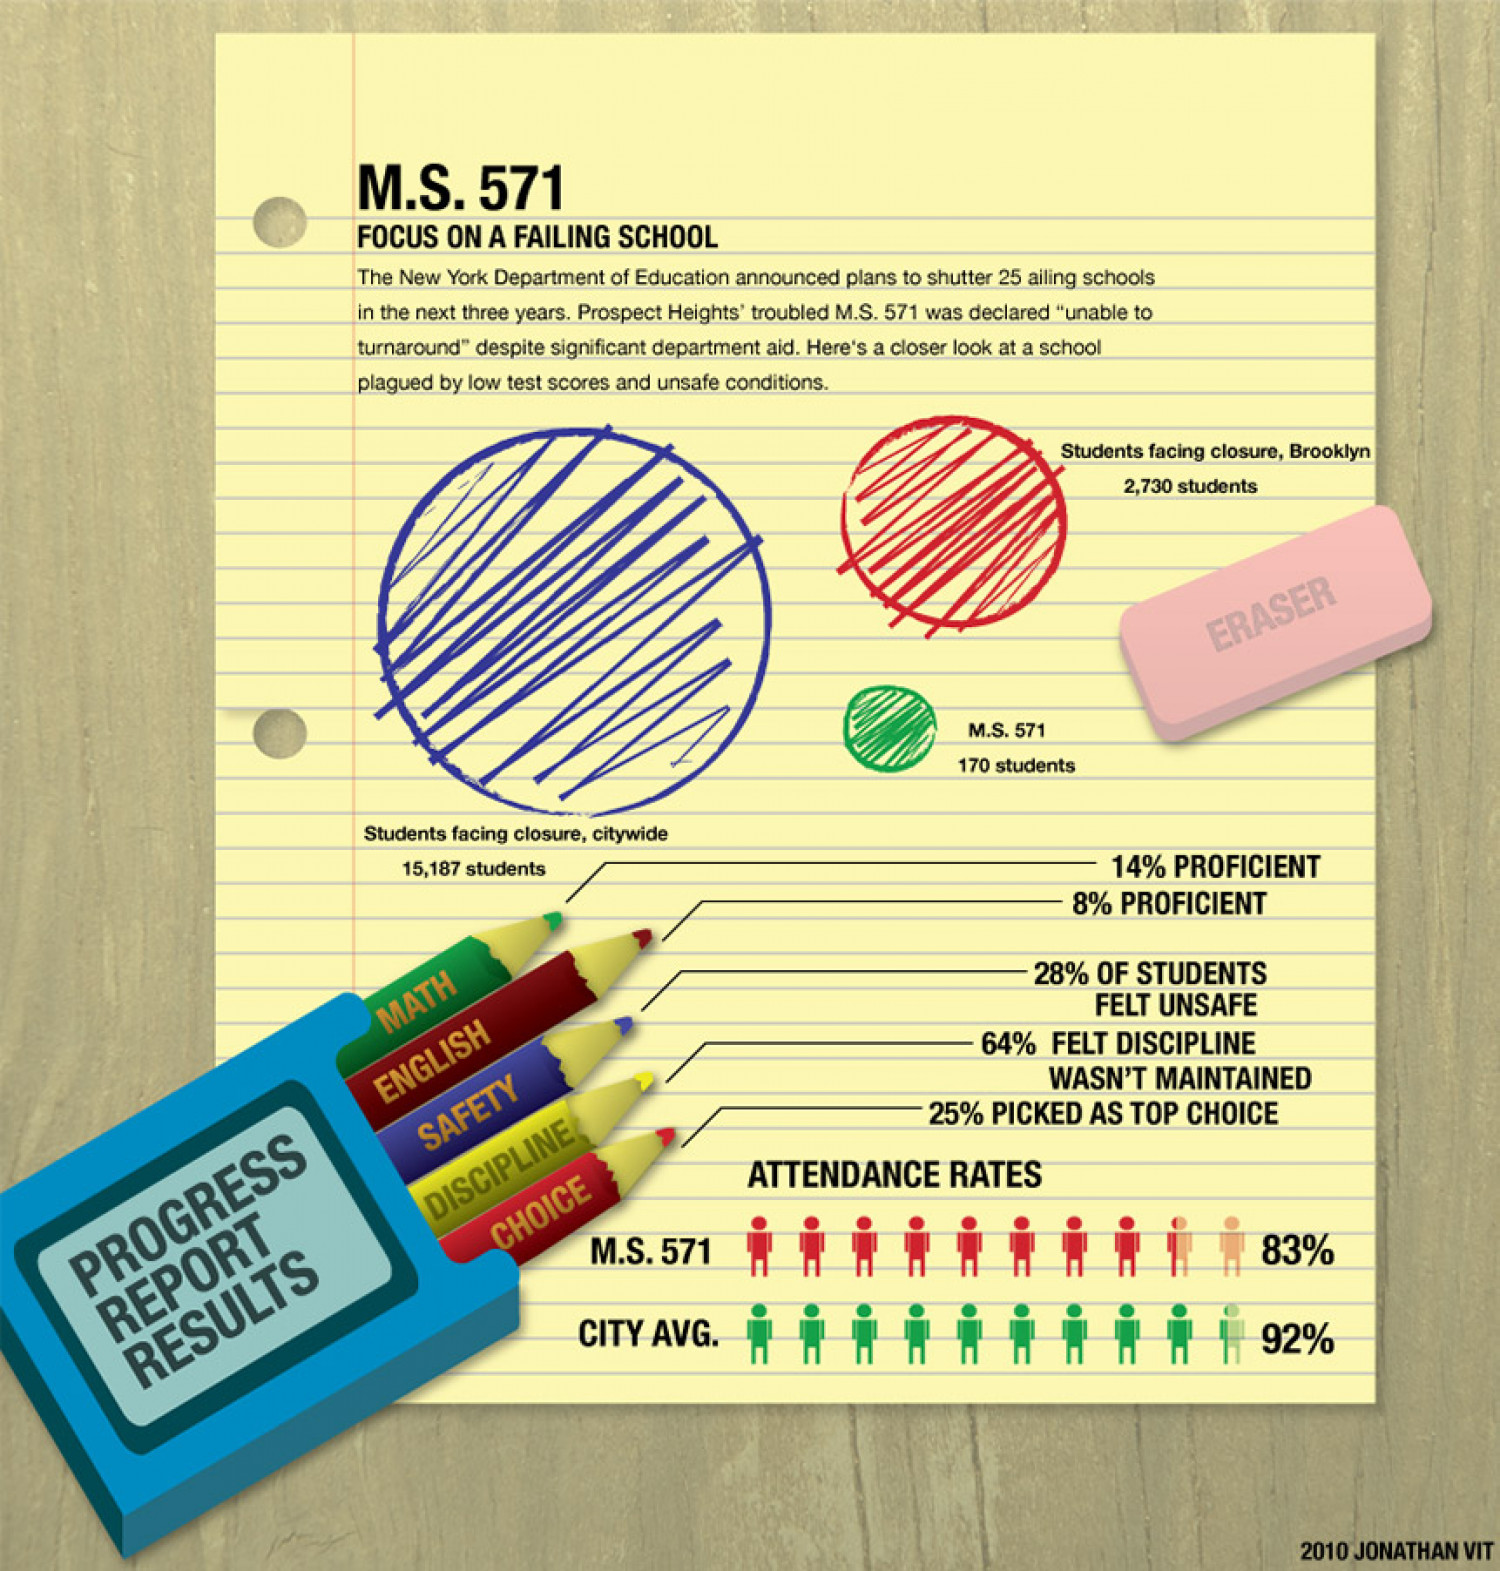 Focus On a Failing School Infographic